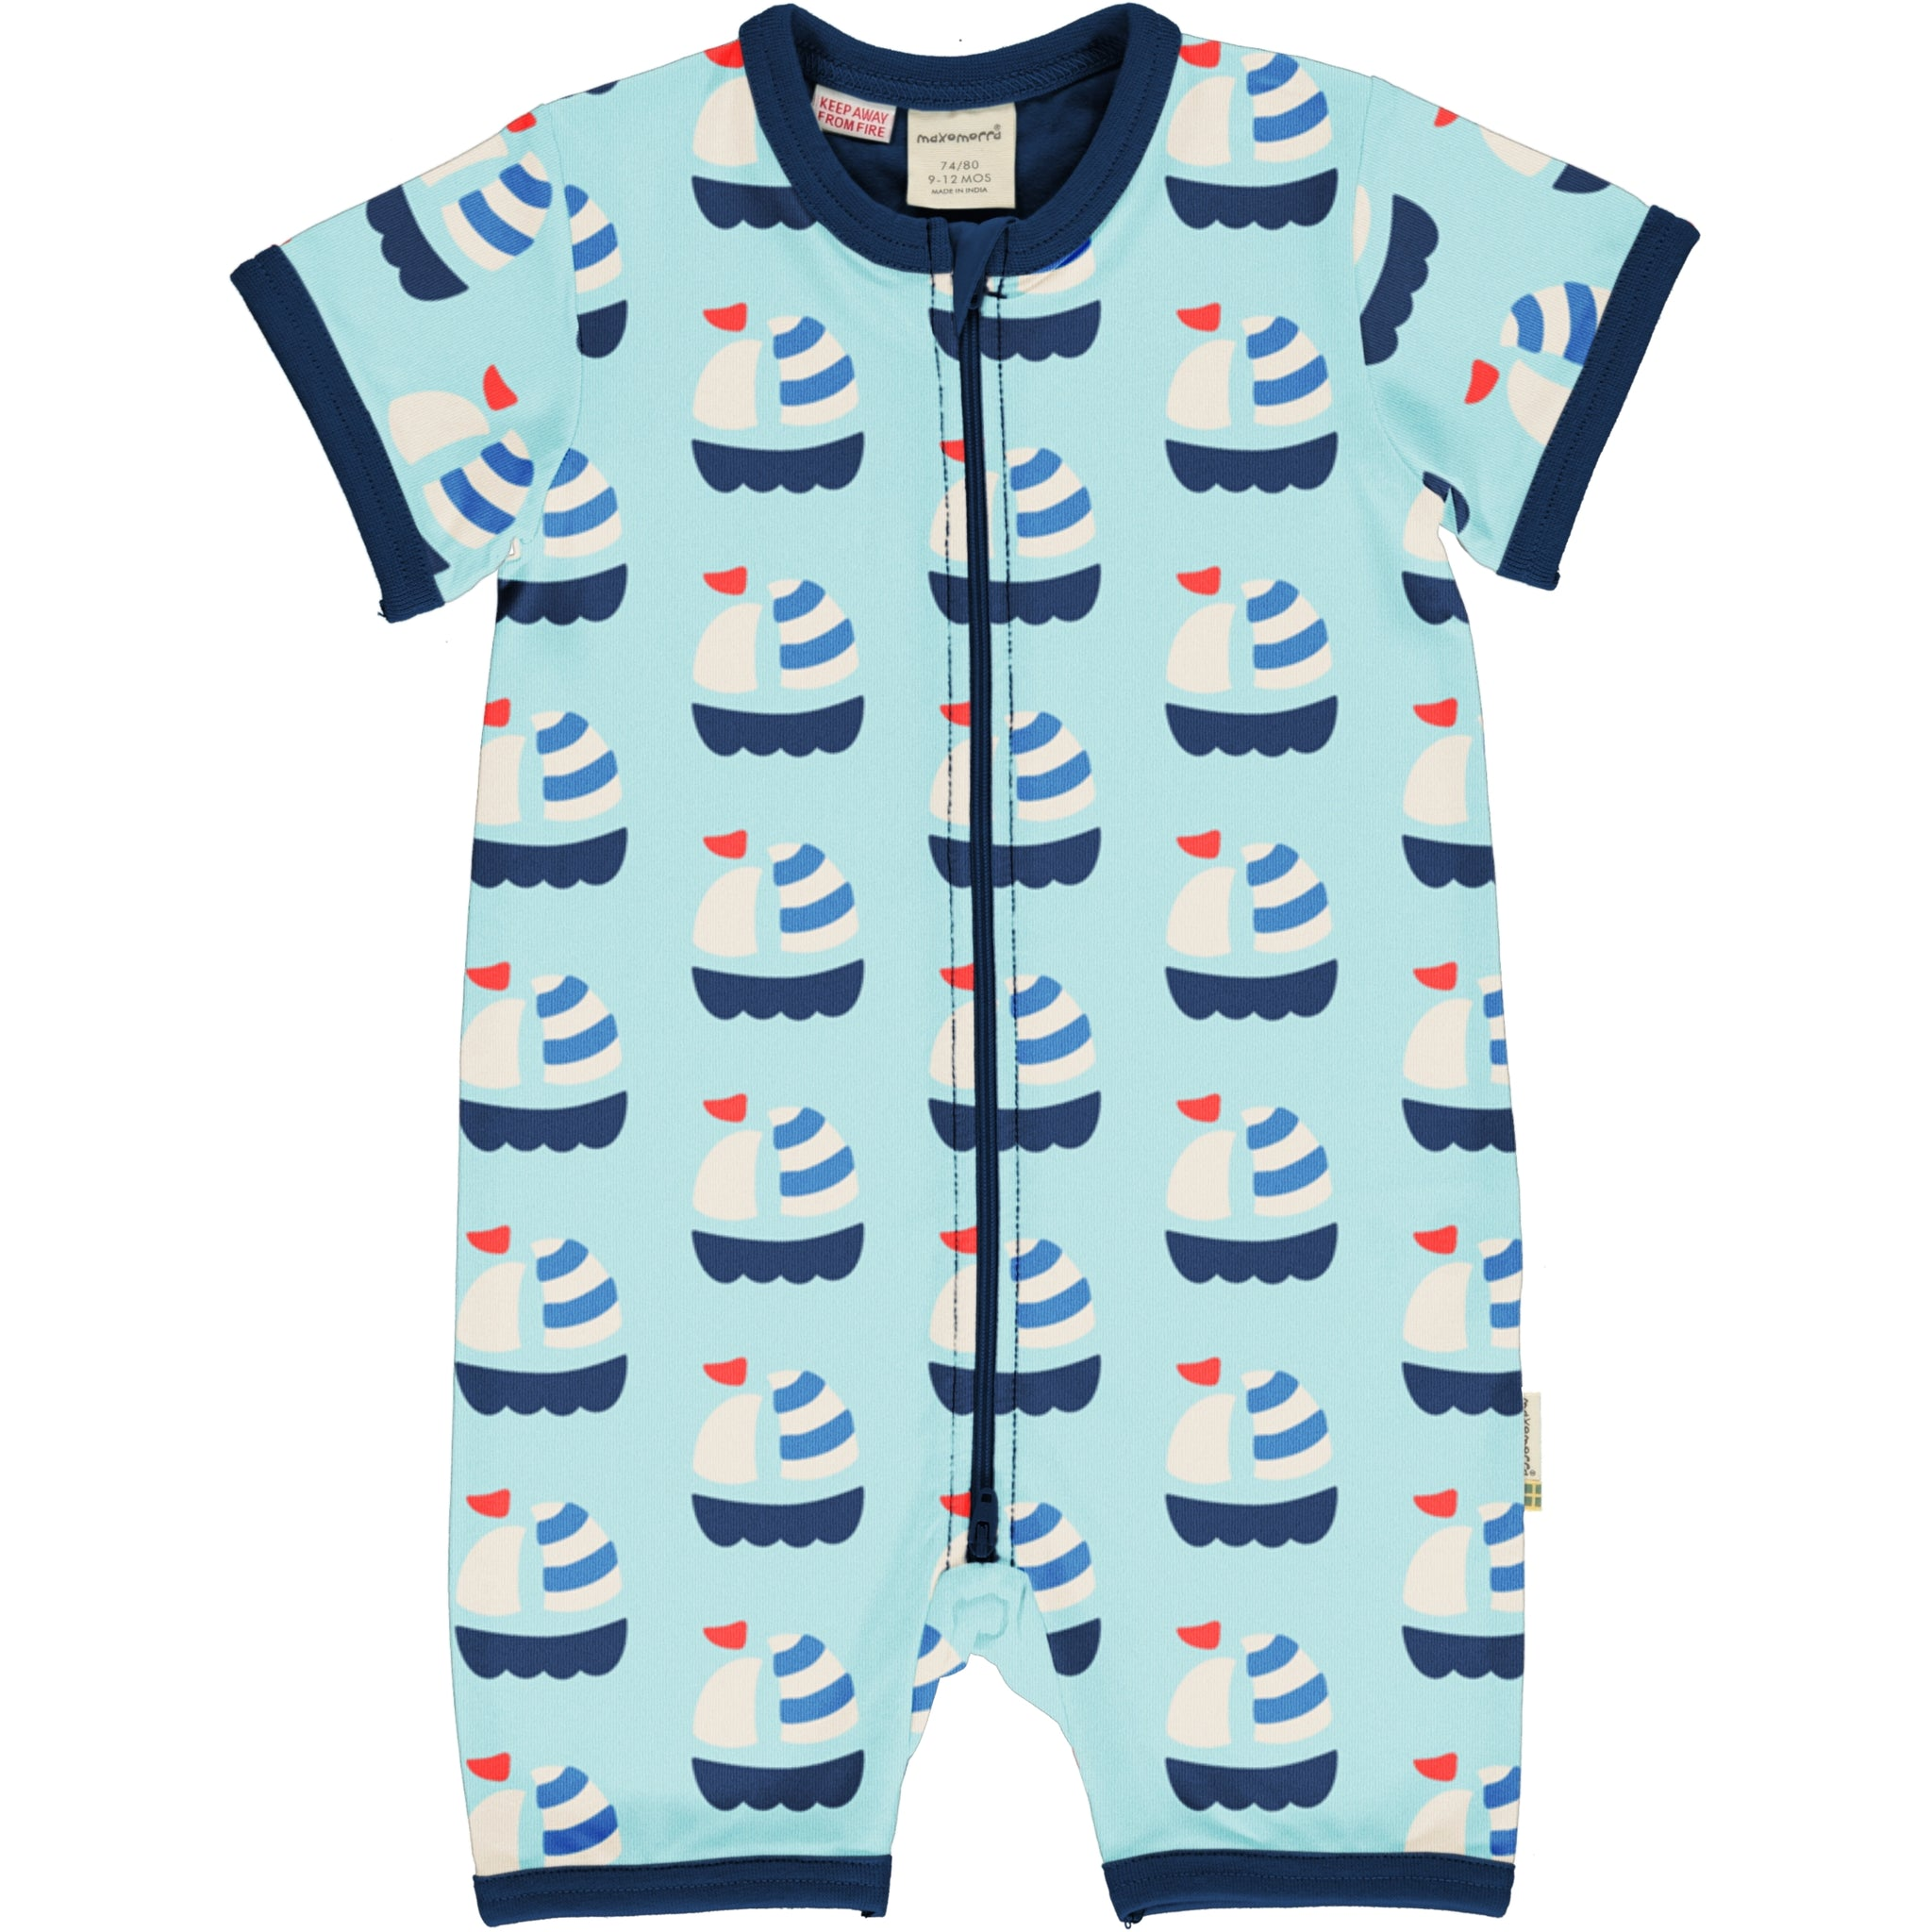 Maxomorra Rompersuit SS Sailboat,little-tiger-togs.